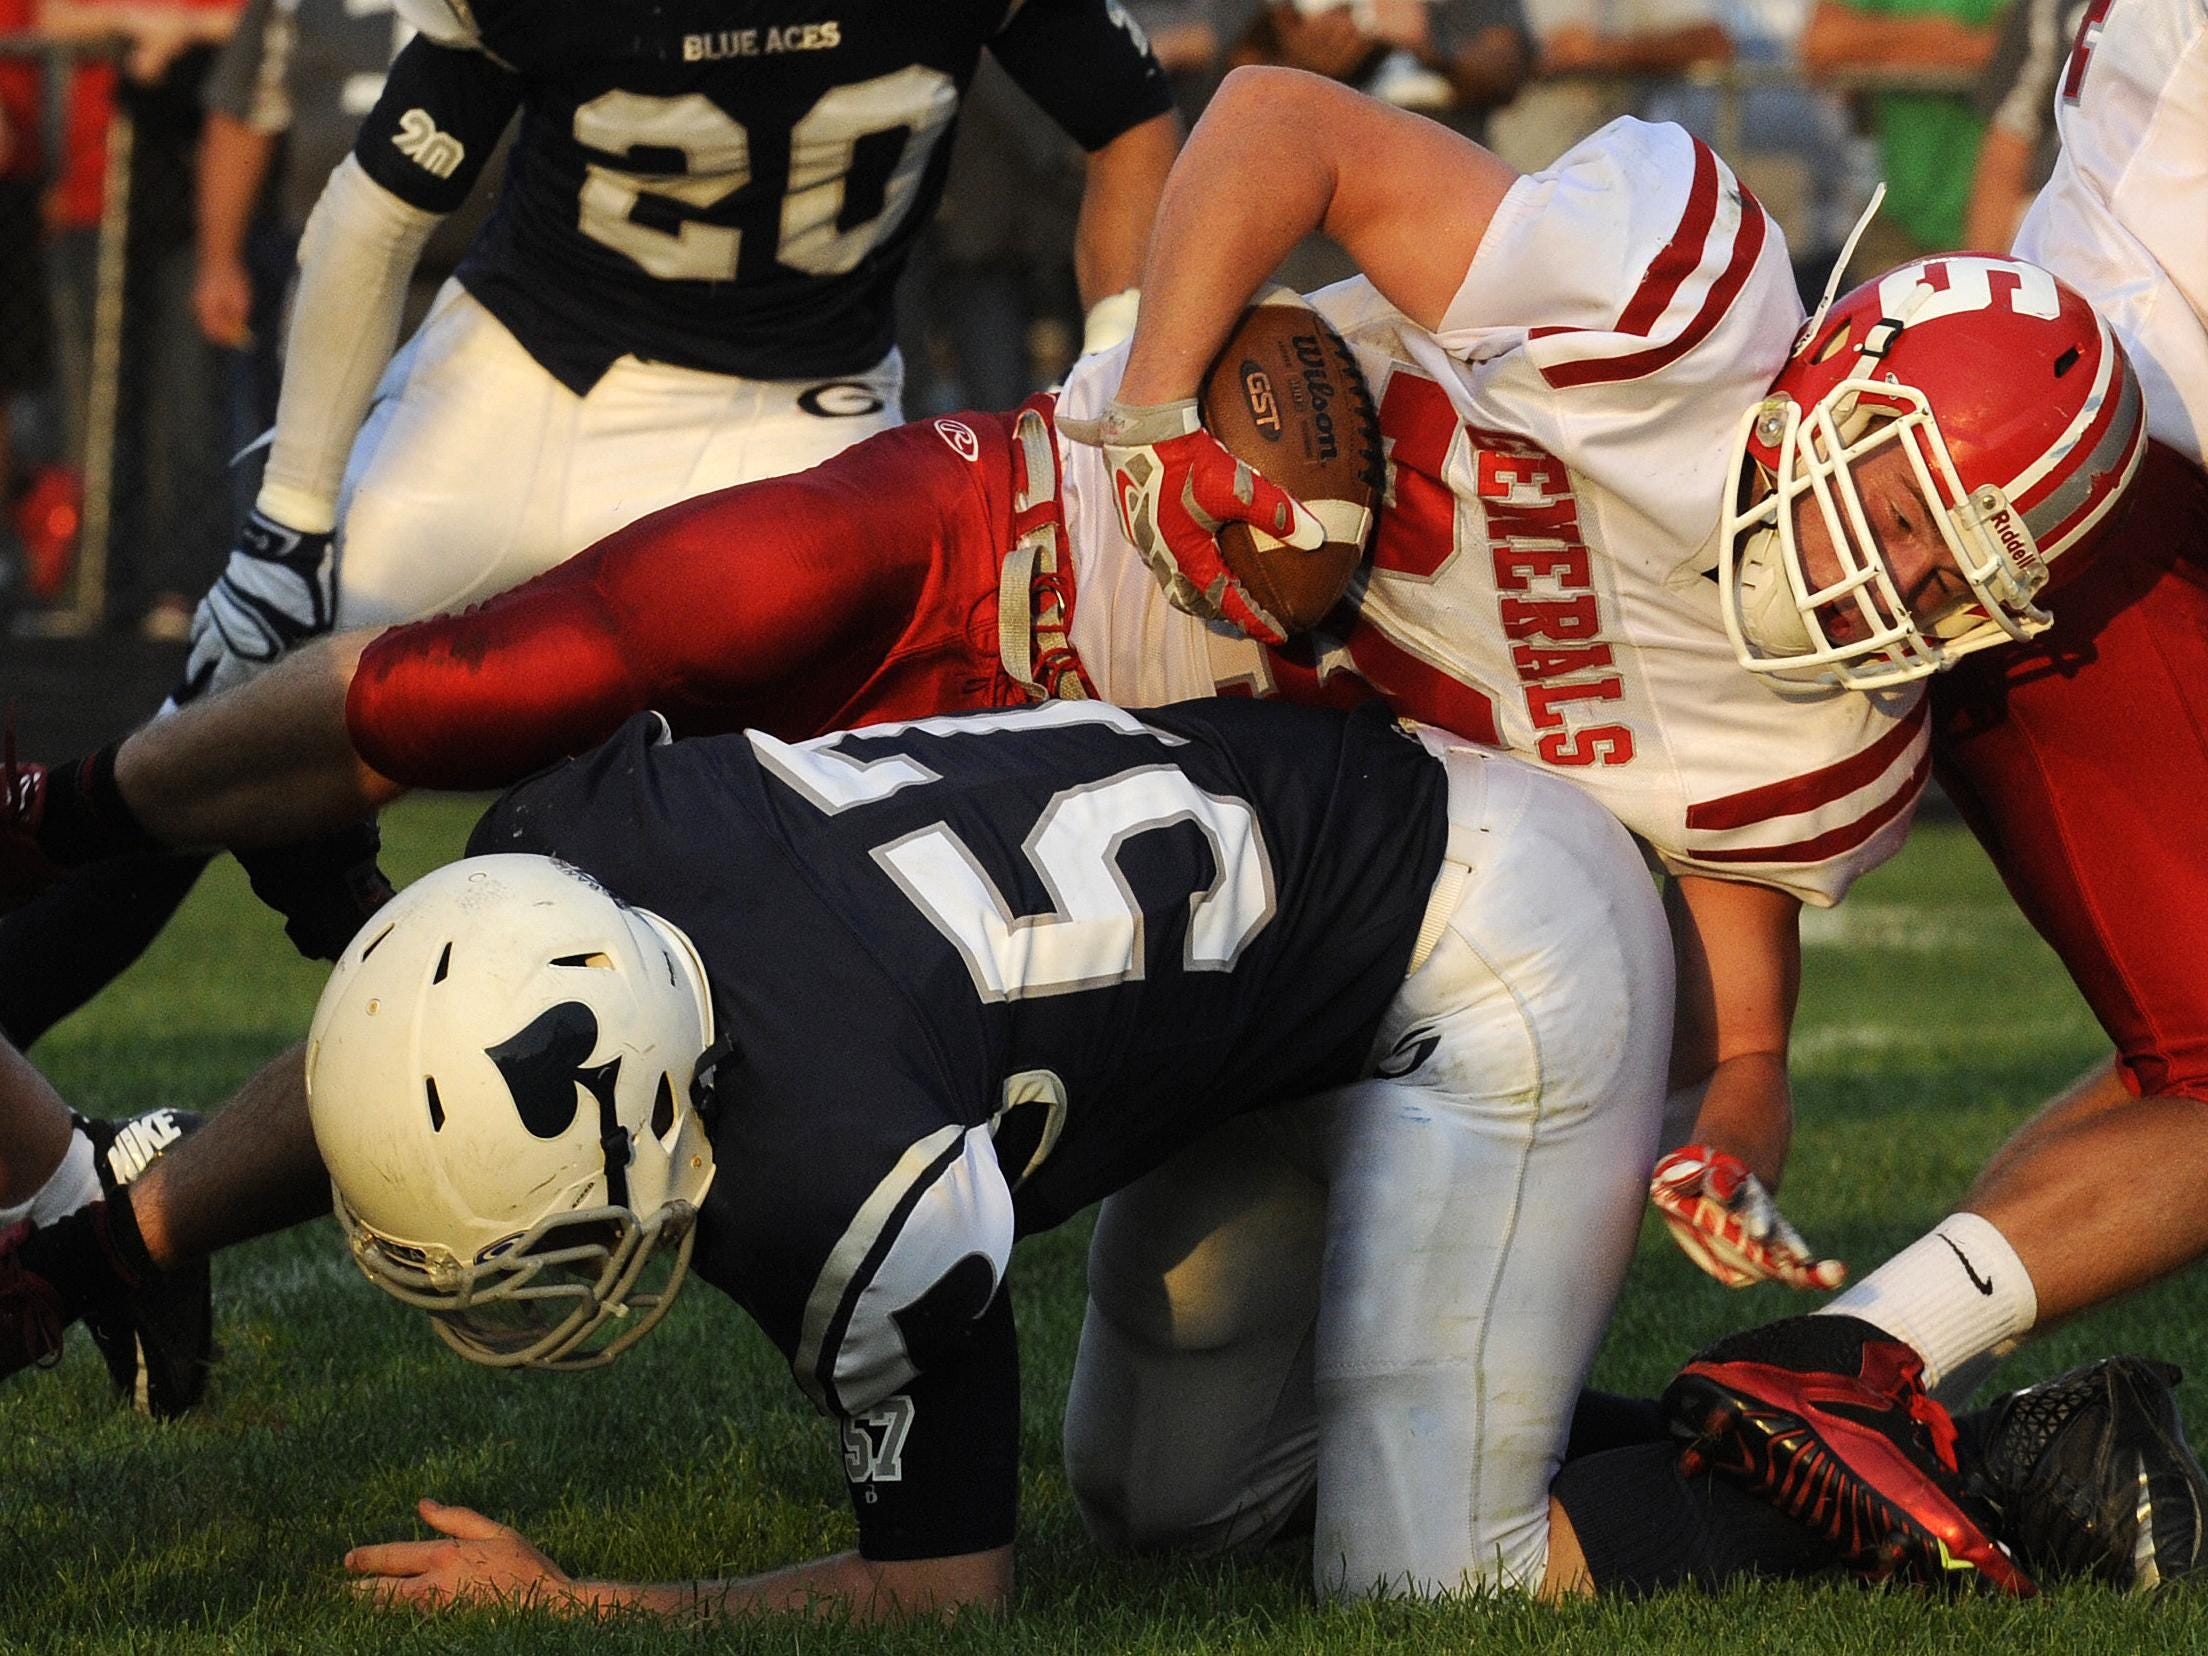 Granville's Mathieu Holt (57) and Andrew Bubnar (20) team up to take down a Sheridan ball carrier during the Blue Aces' season-opening win.